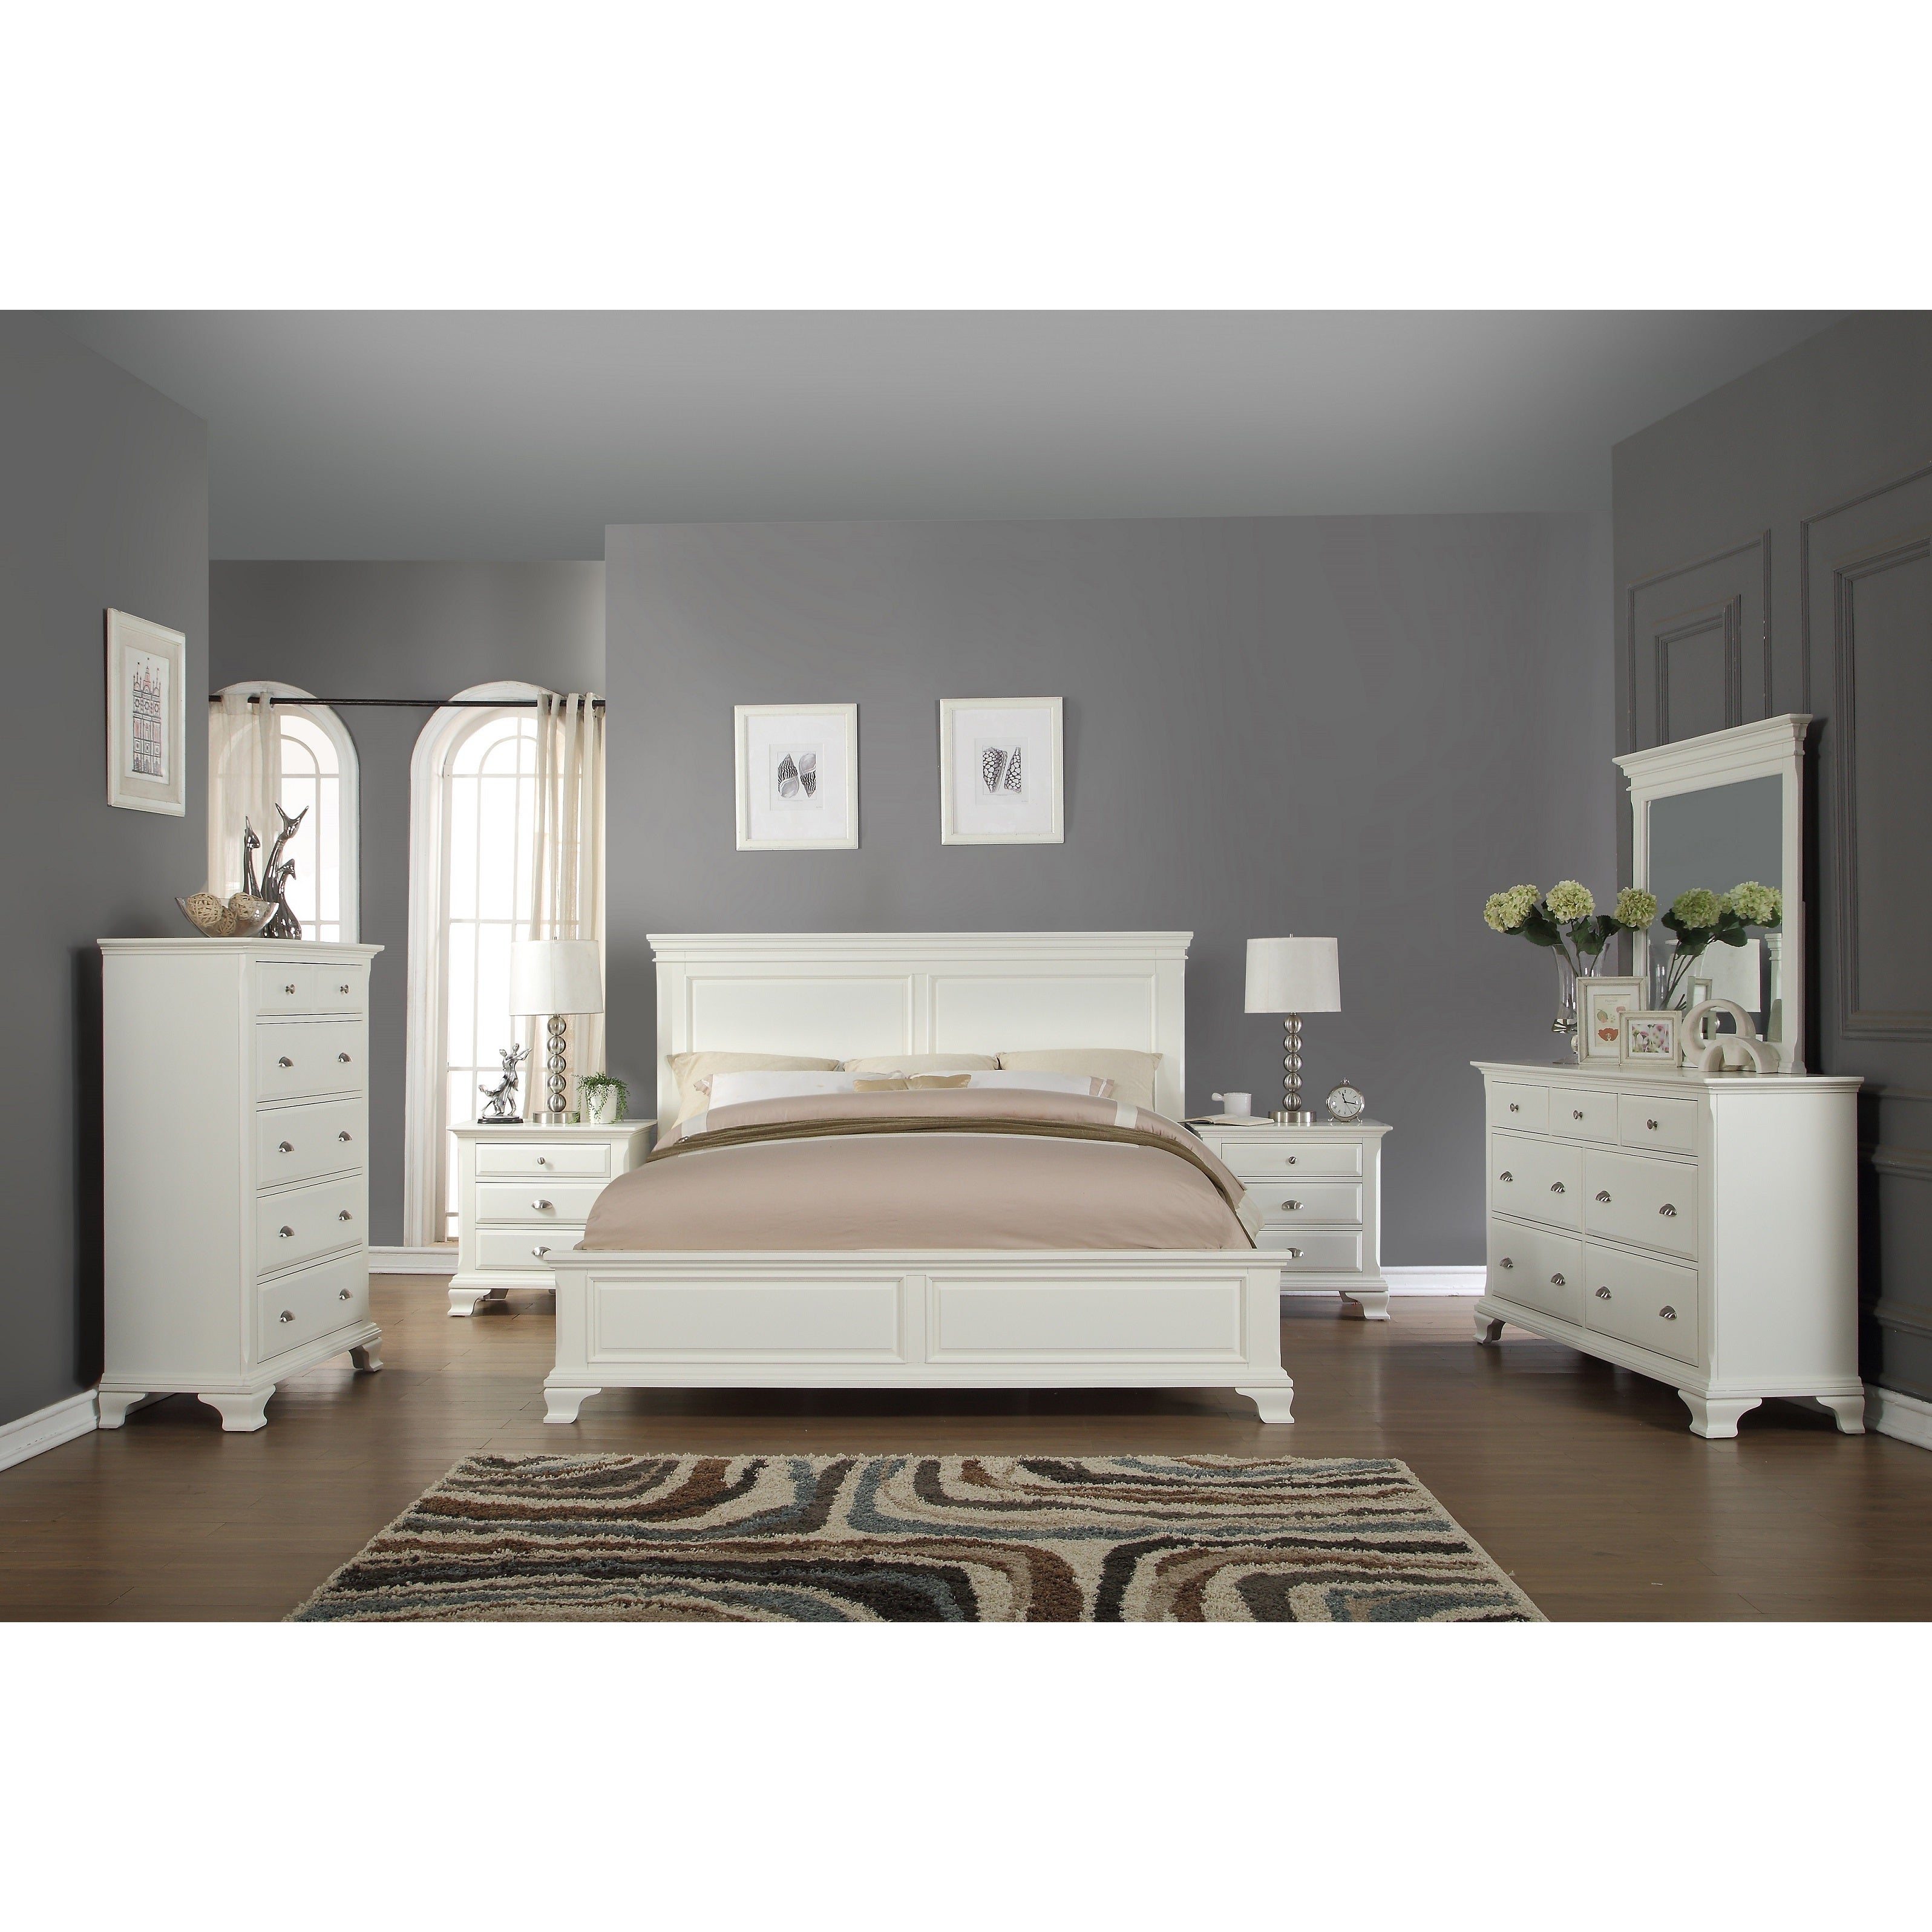 Buy White Bedroom Sets Online at Overstock | Our Best ...